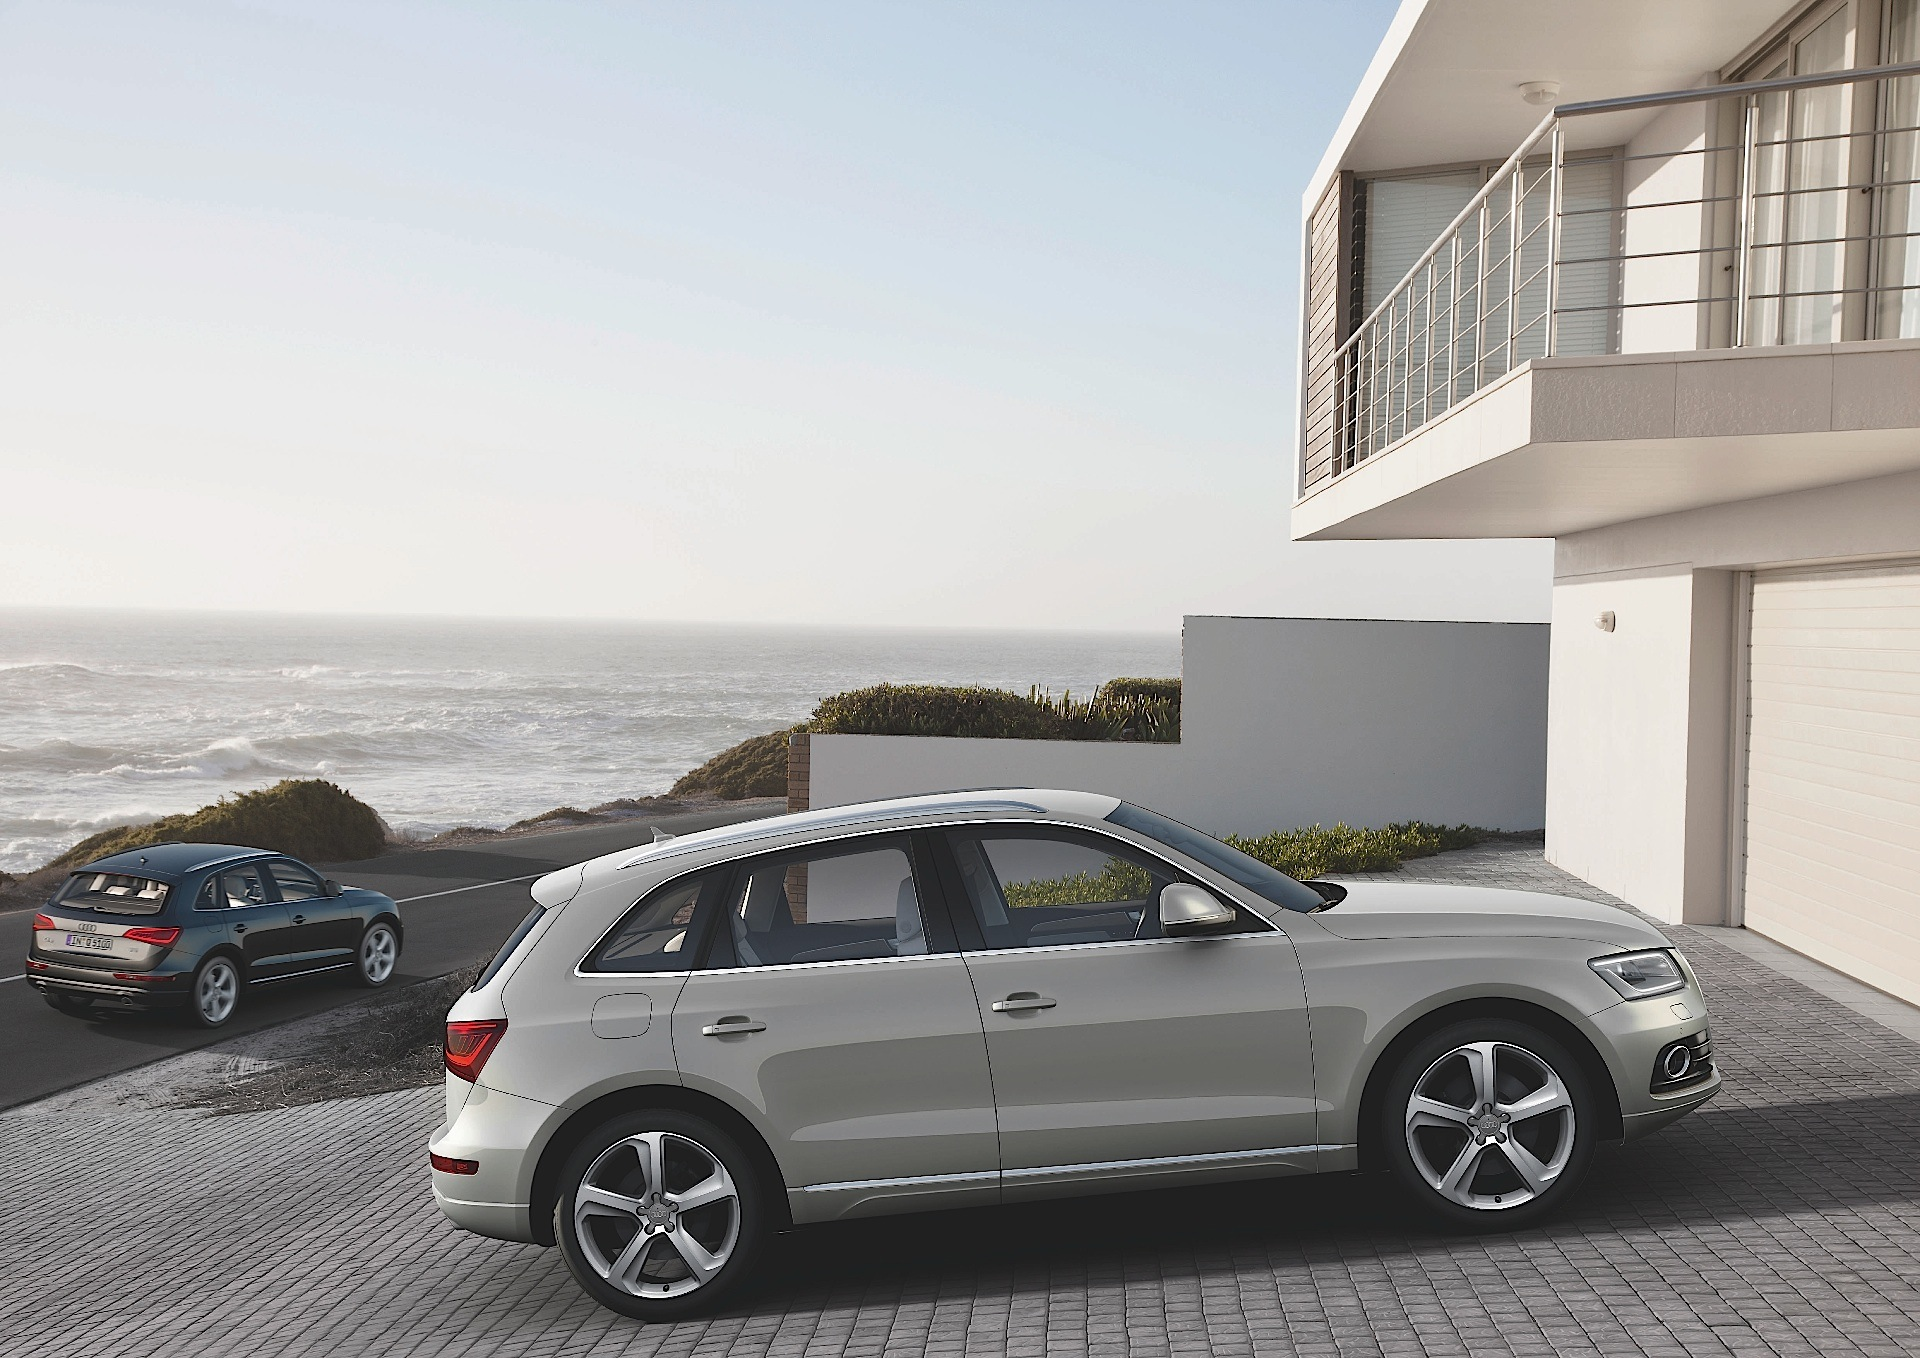 audi q5 specs 2008 2009 2010 2011 2012 autoevolution. Black Bedroom Furniture Sets. Home Design Ideas